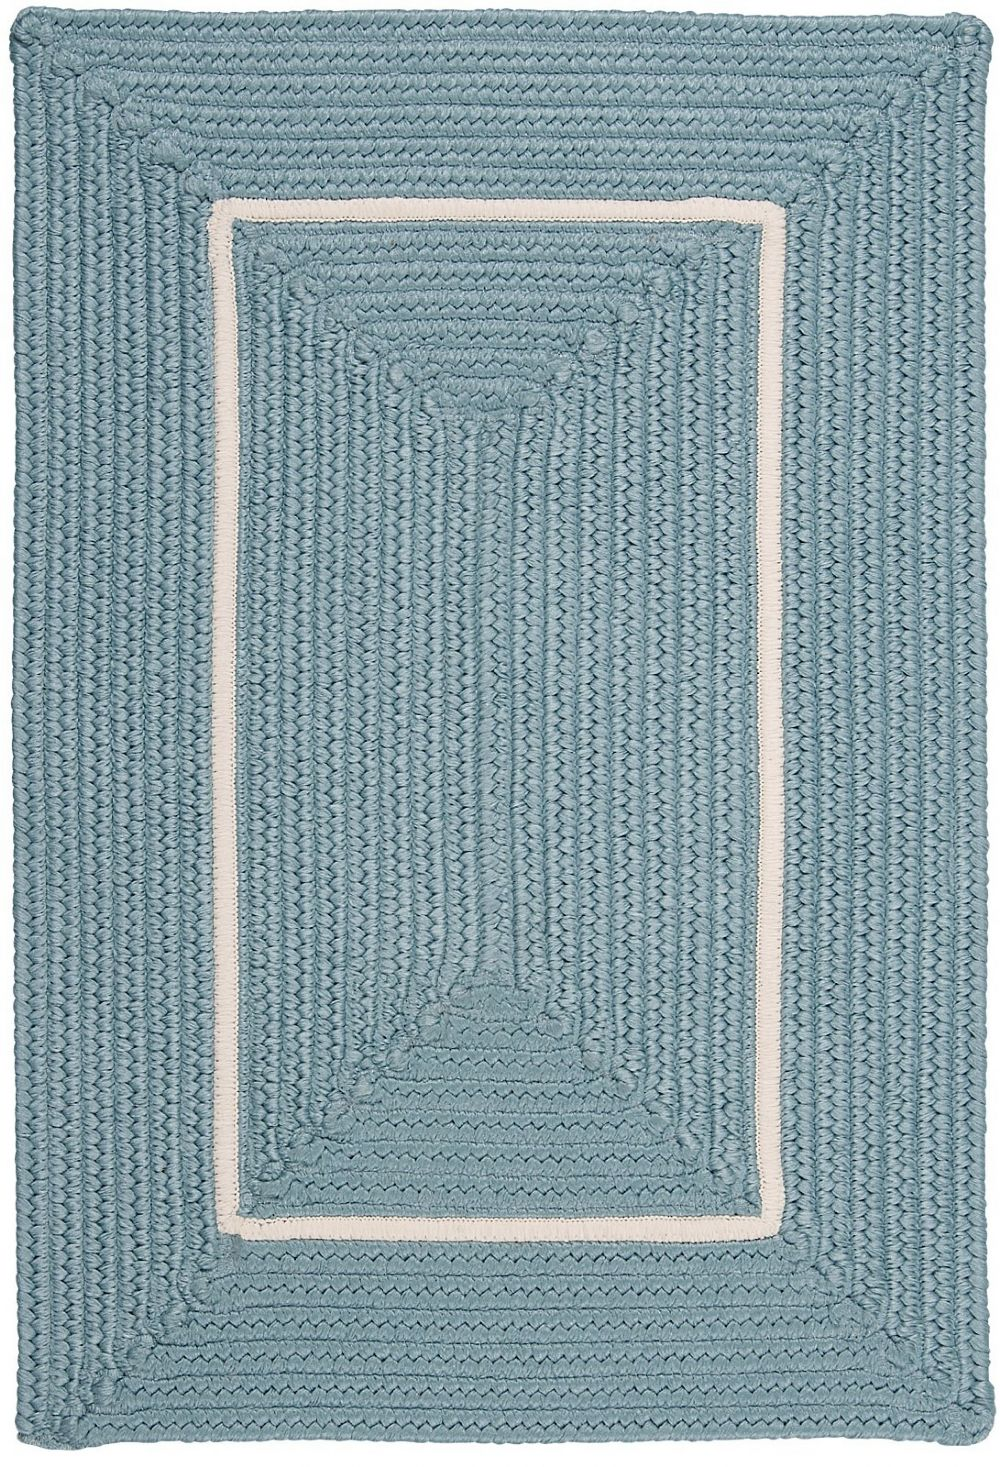 colonial mills doodle edge braided area rug collection